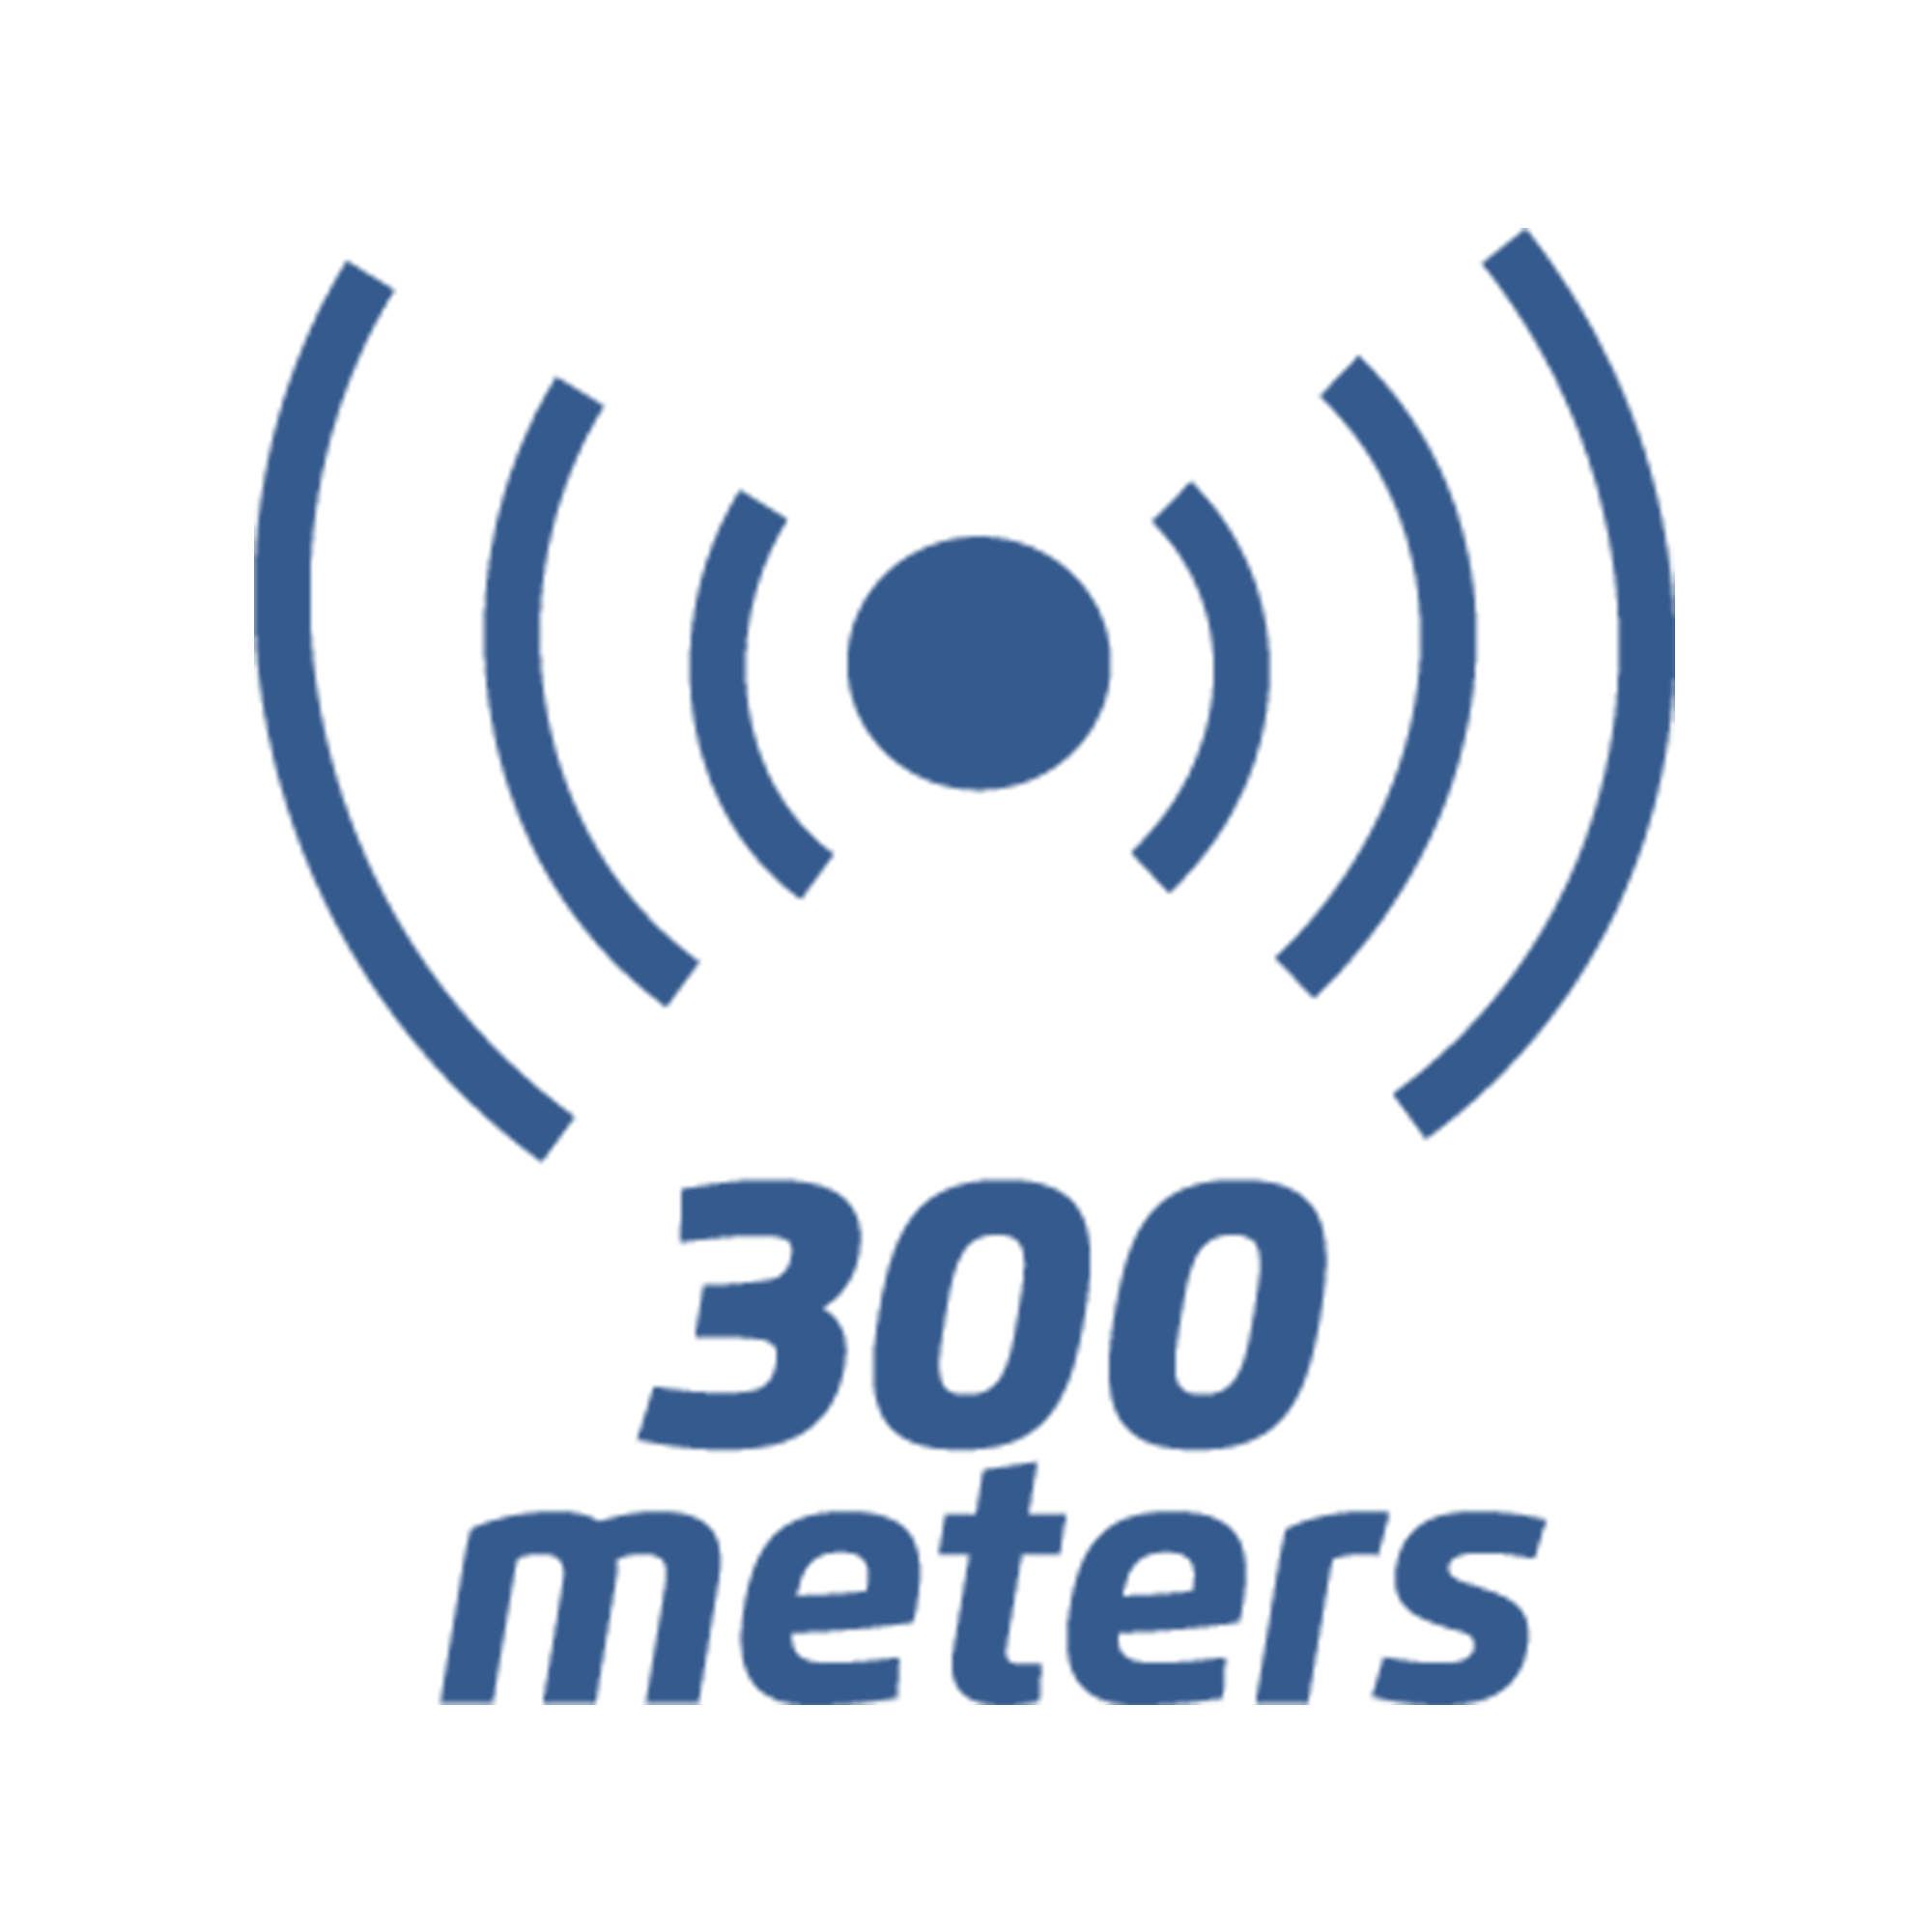 300_meters_icon